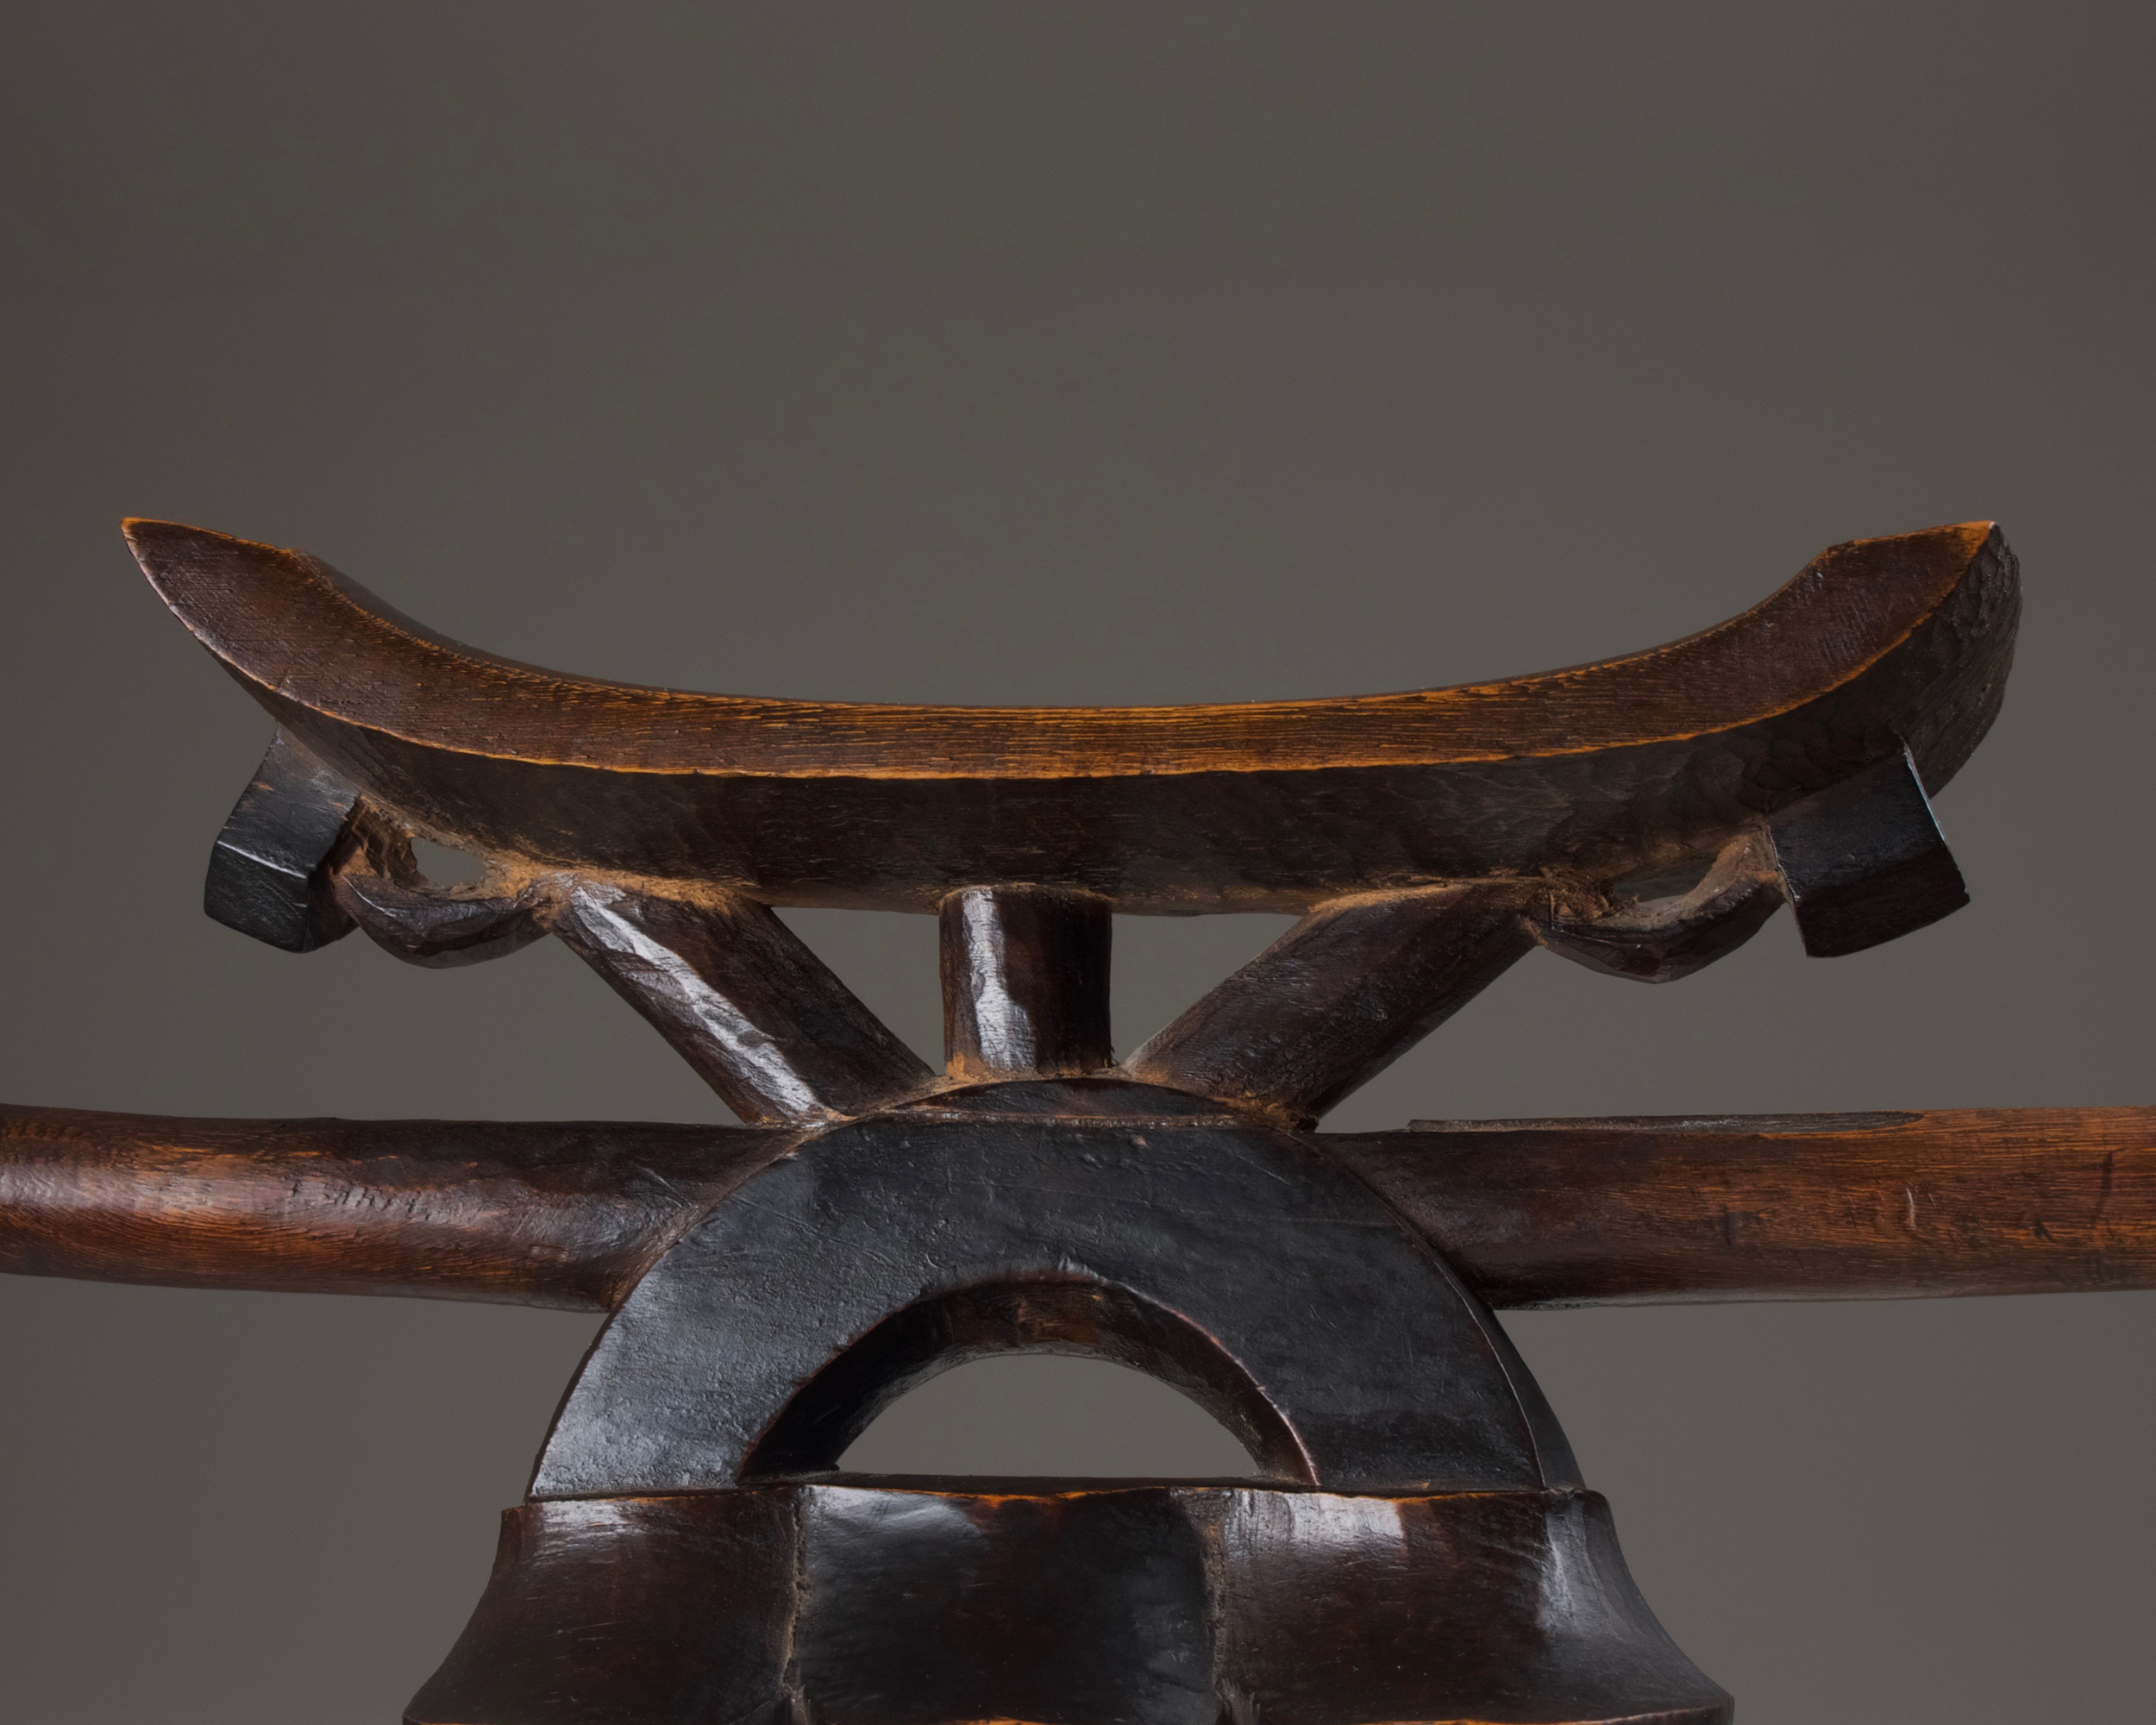 A Headrest Staff with Spoon